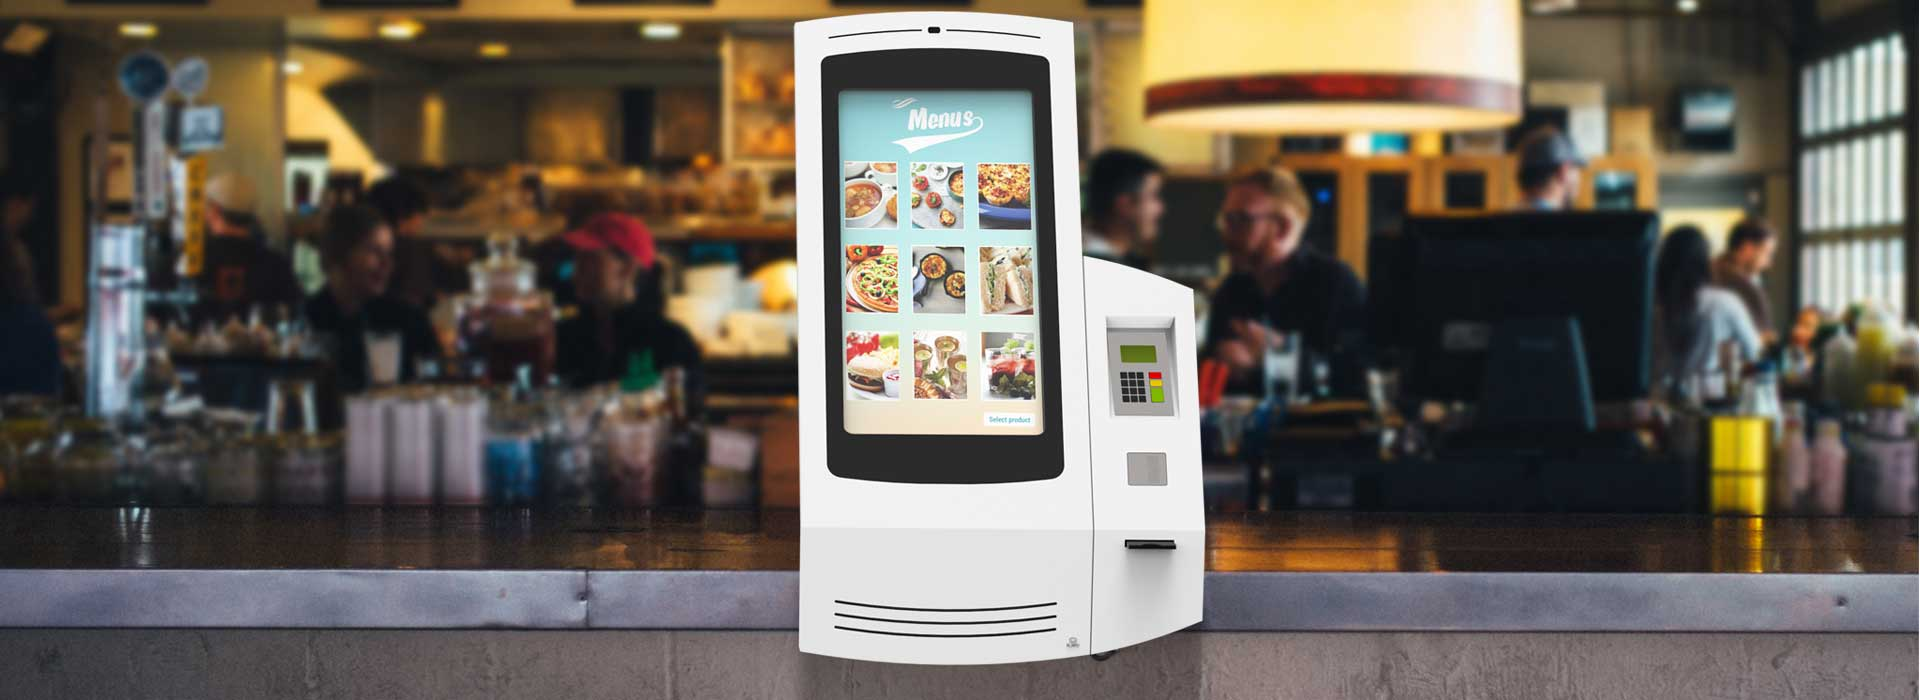 Kiosks Quick Service Restaurants (QSR)